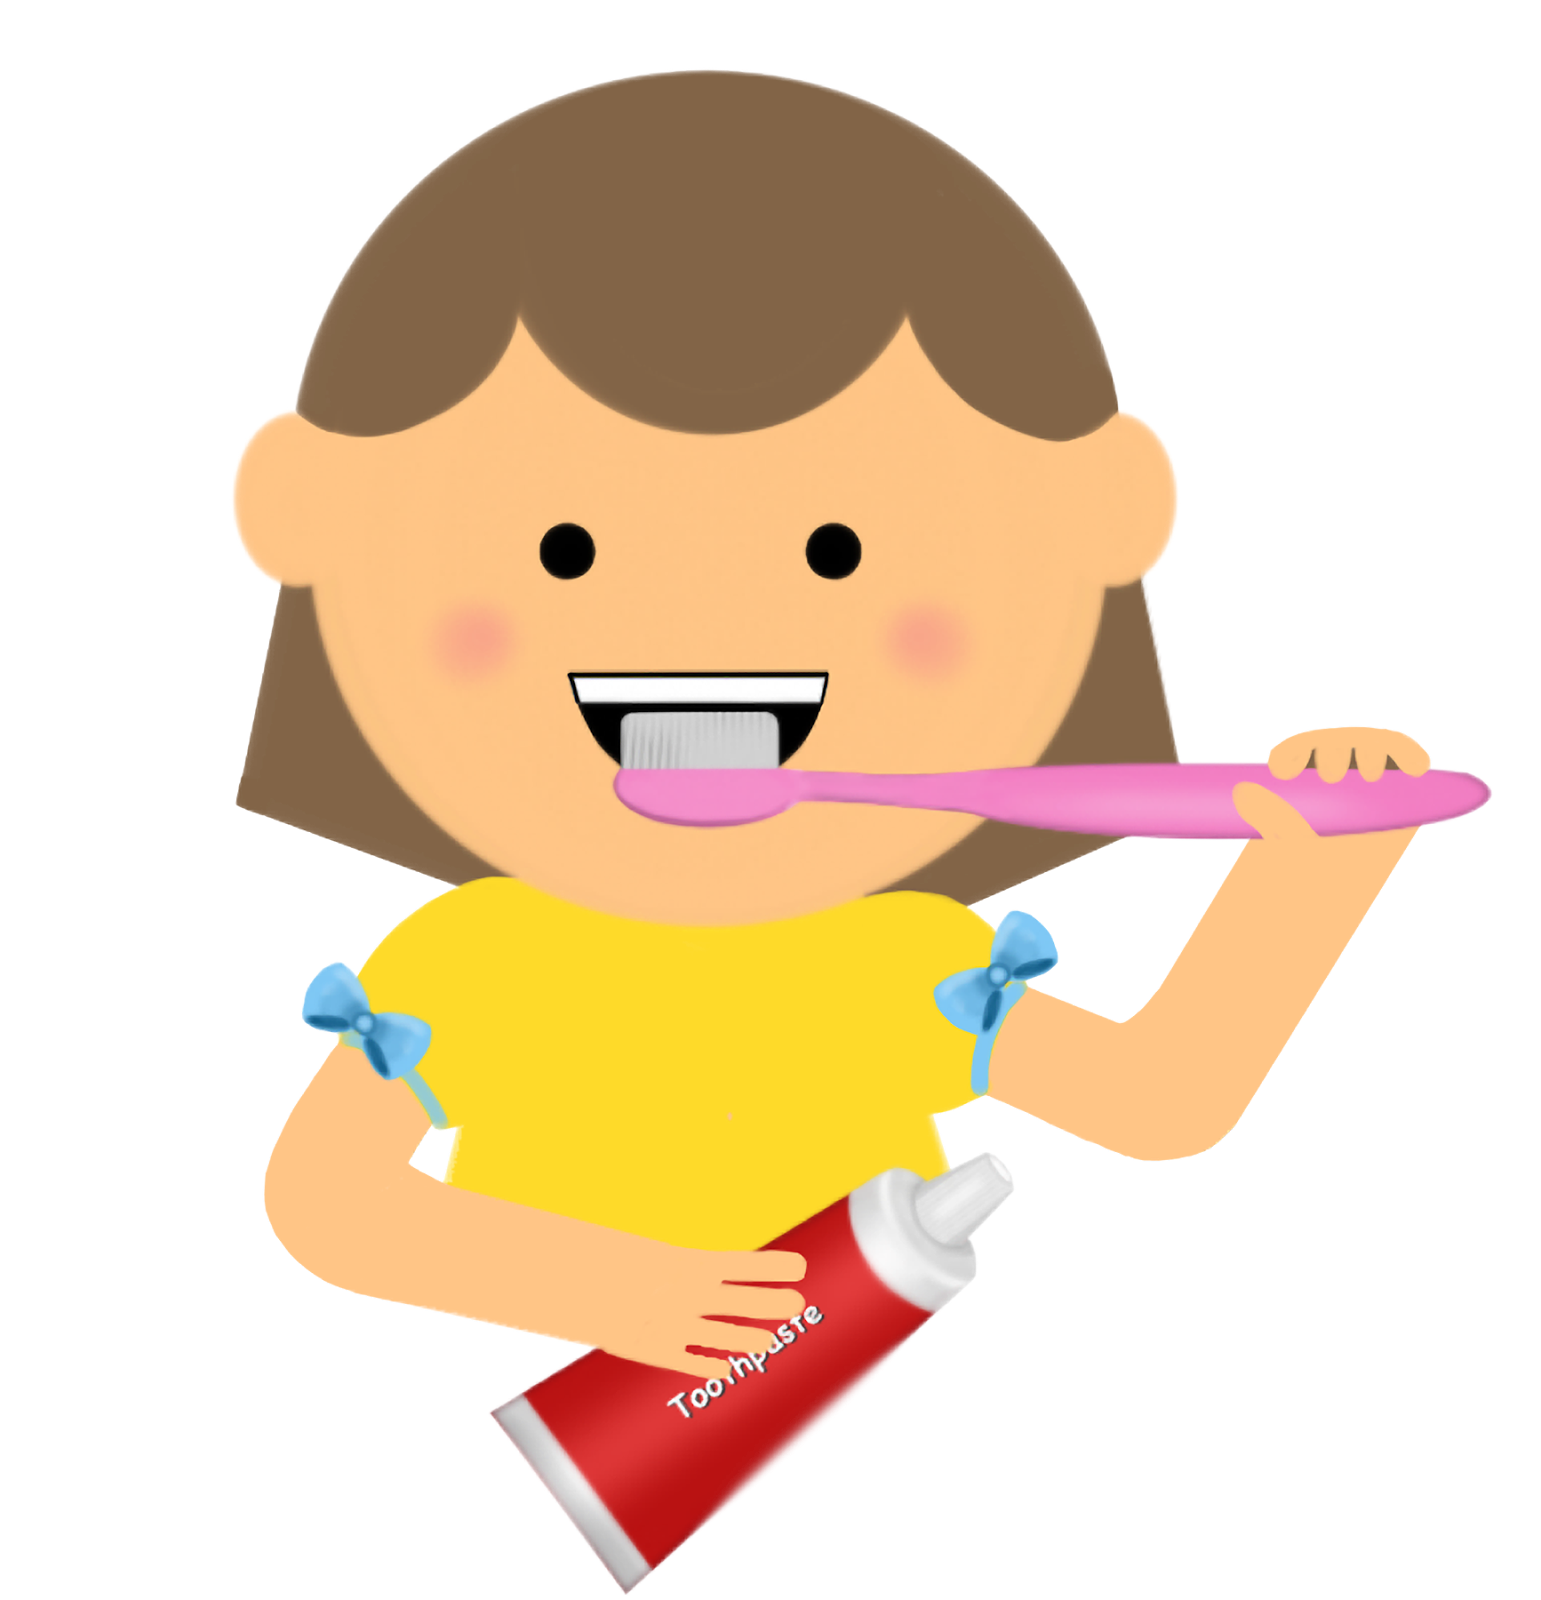 Tooth clipart boy. Brushing teeth letters format